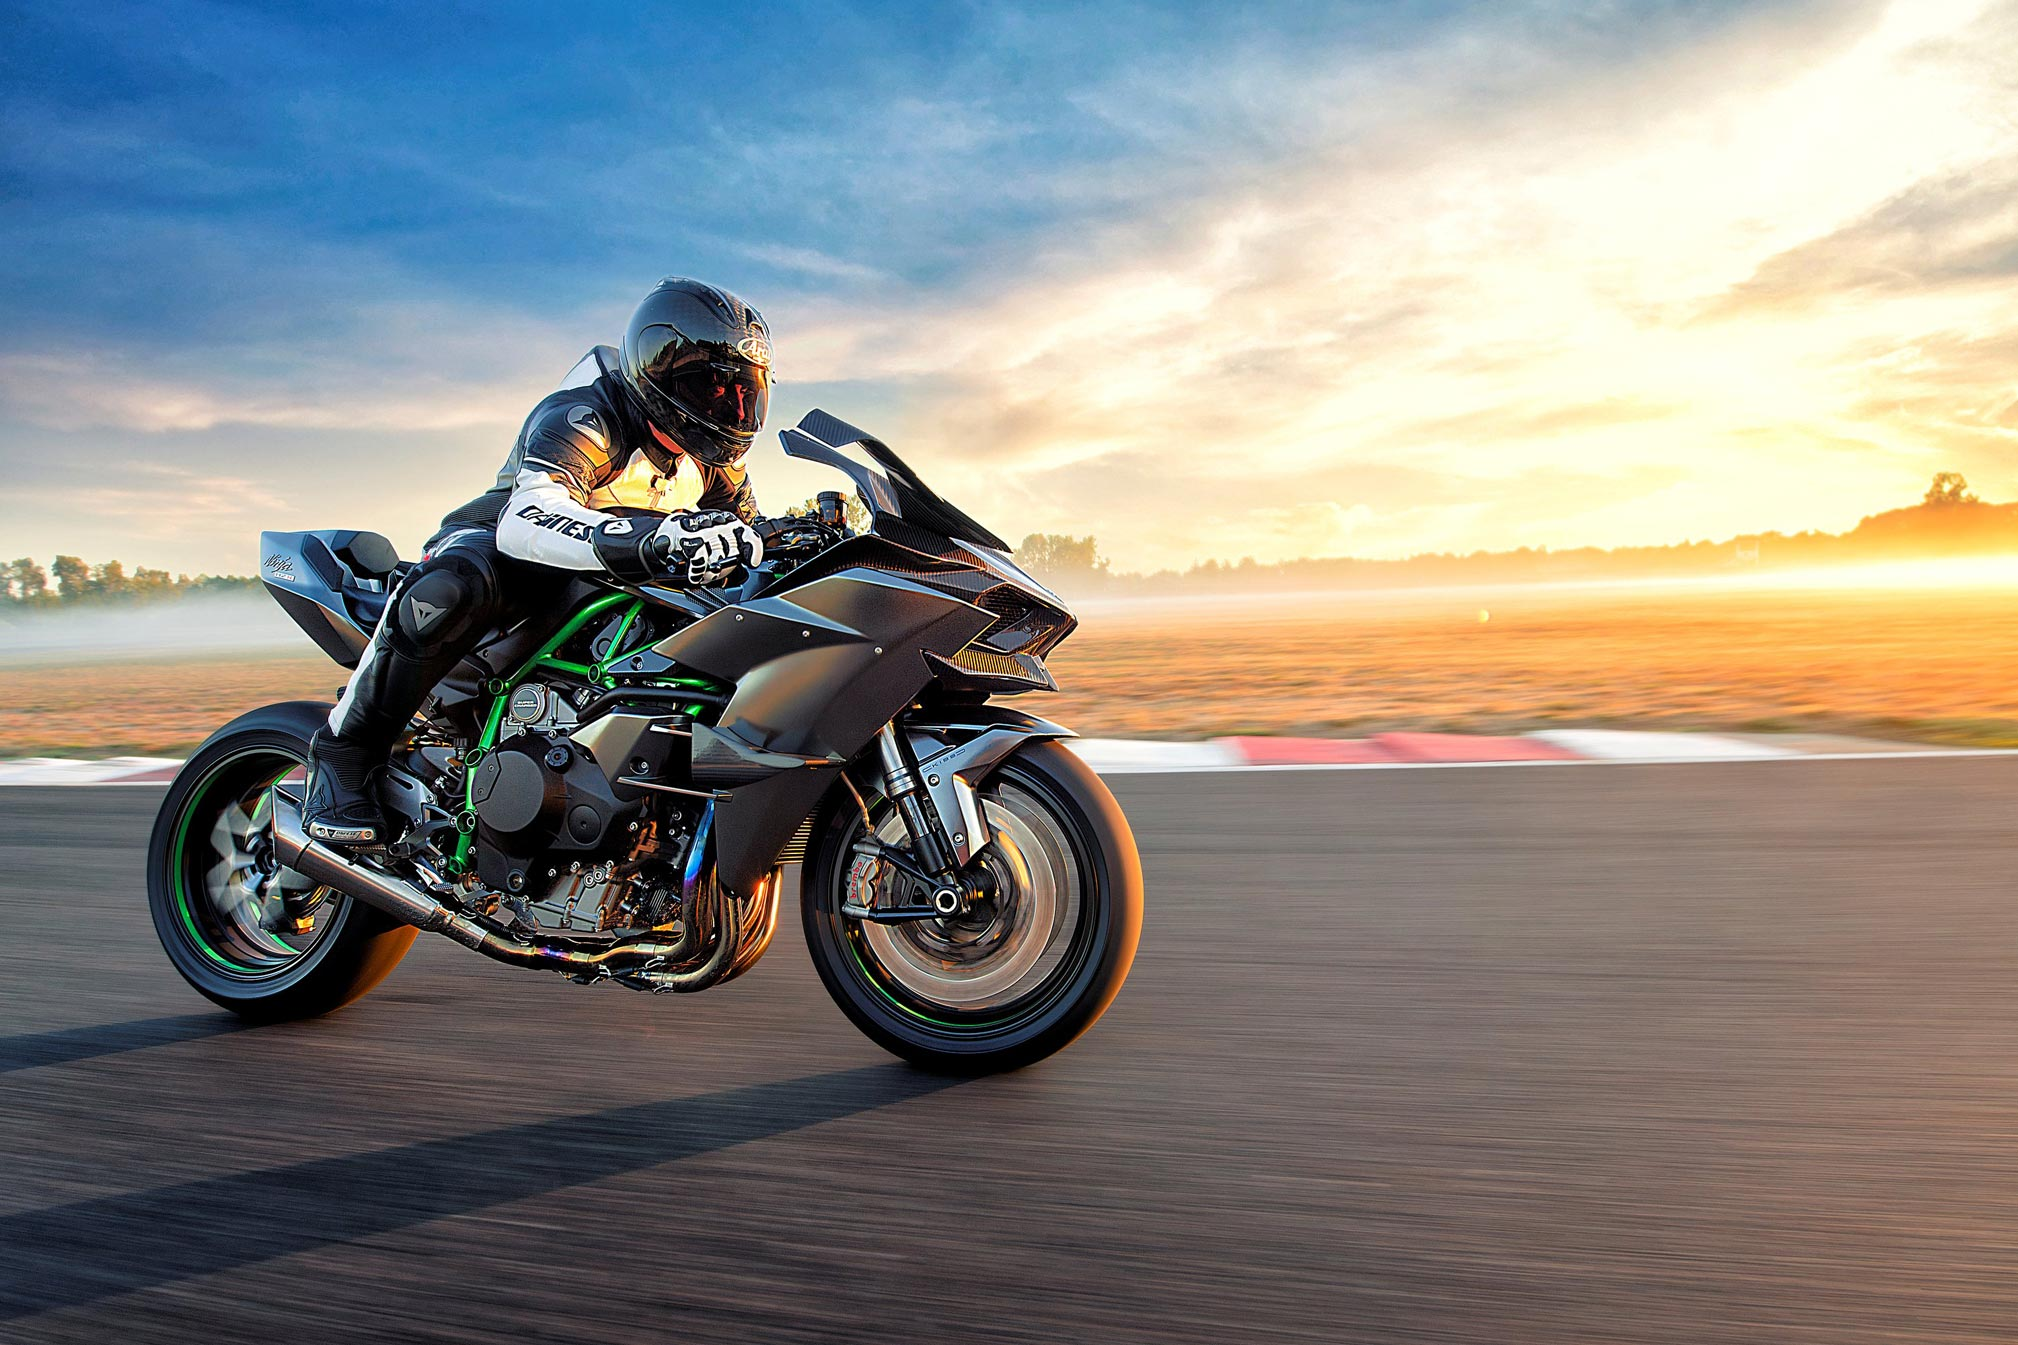 2018 Kawasaki Ninja H2r Review Total Motorcycle